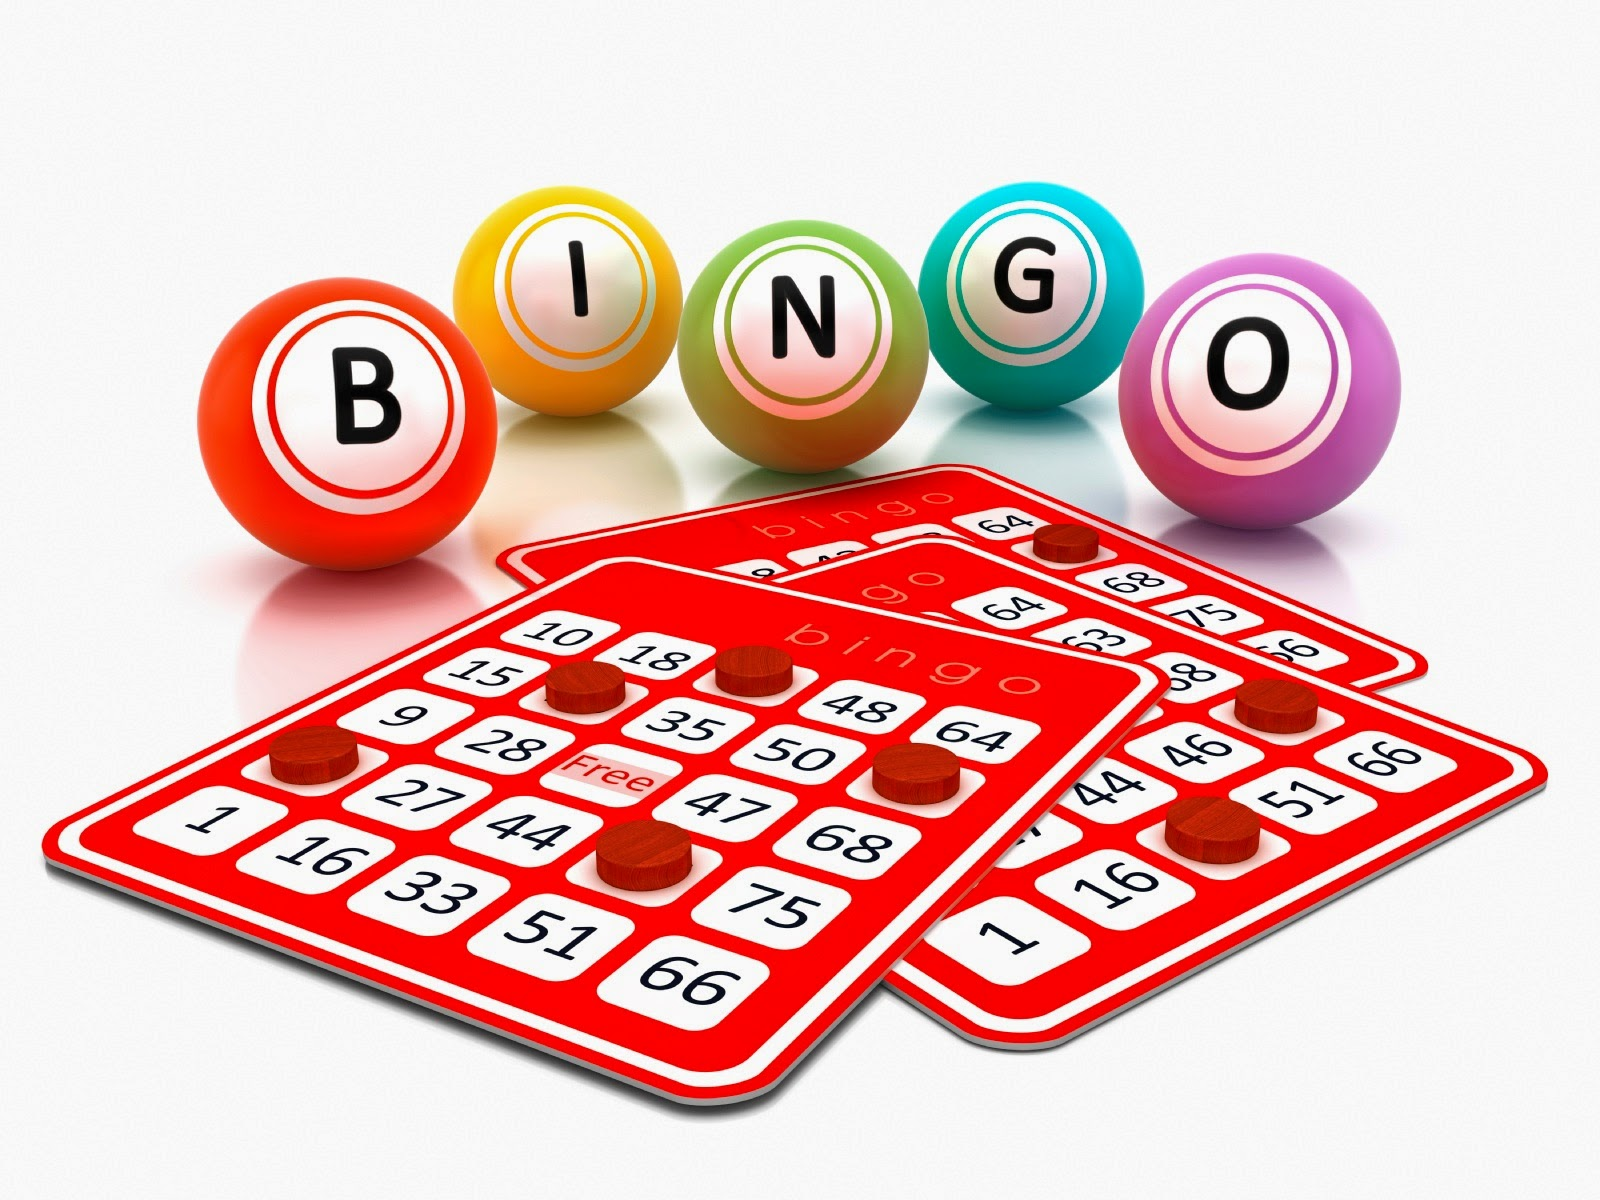 playing bingo, online bingo, bing games online, best bingo sites, playing online bingo